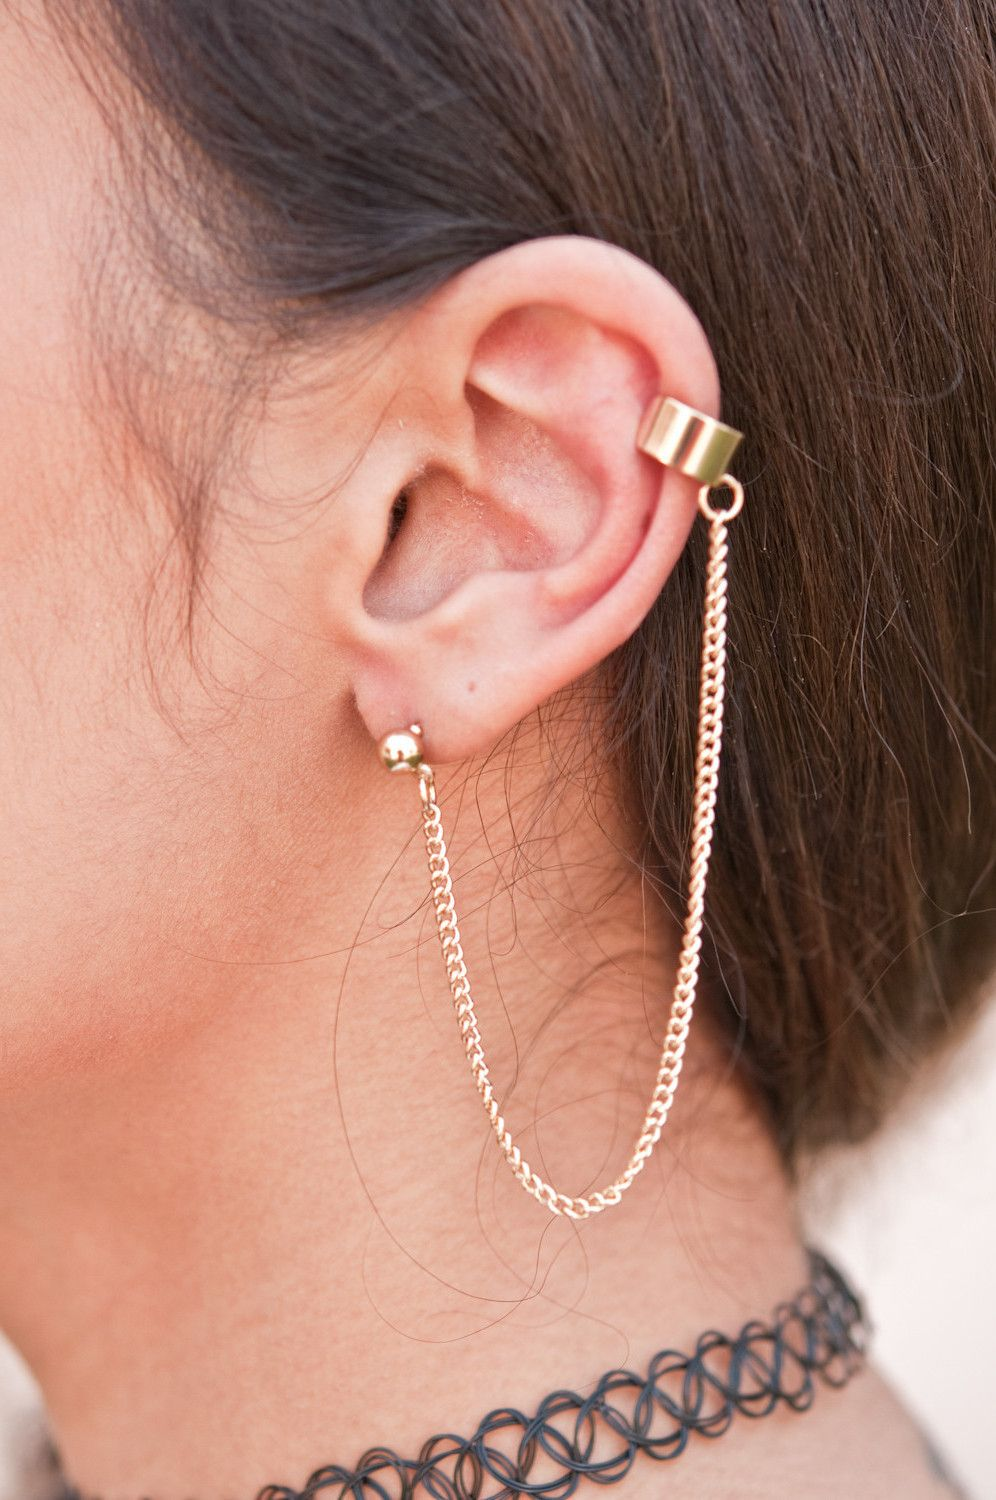 Simple Gold Ear Cuff Chain Earrings